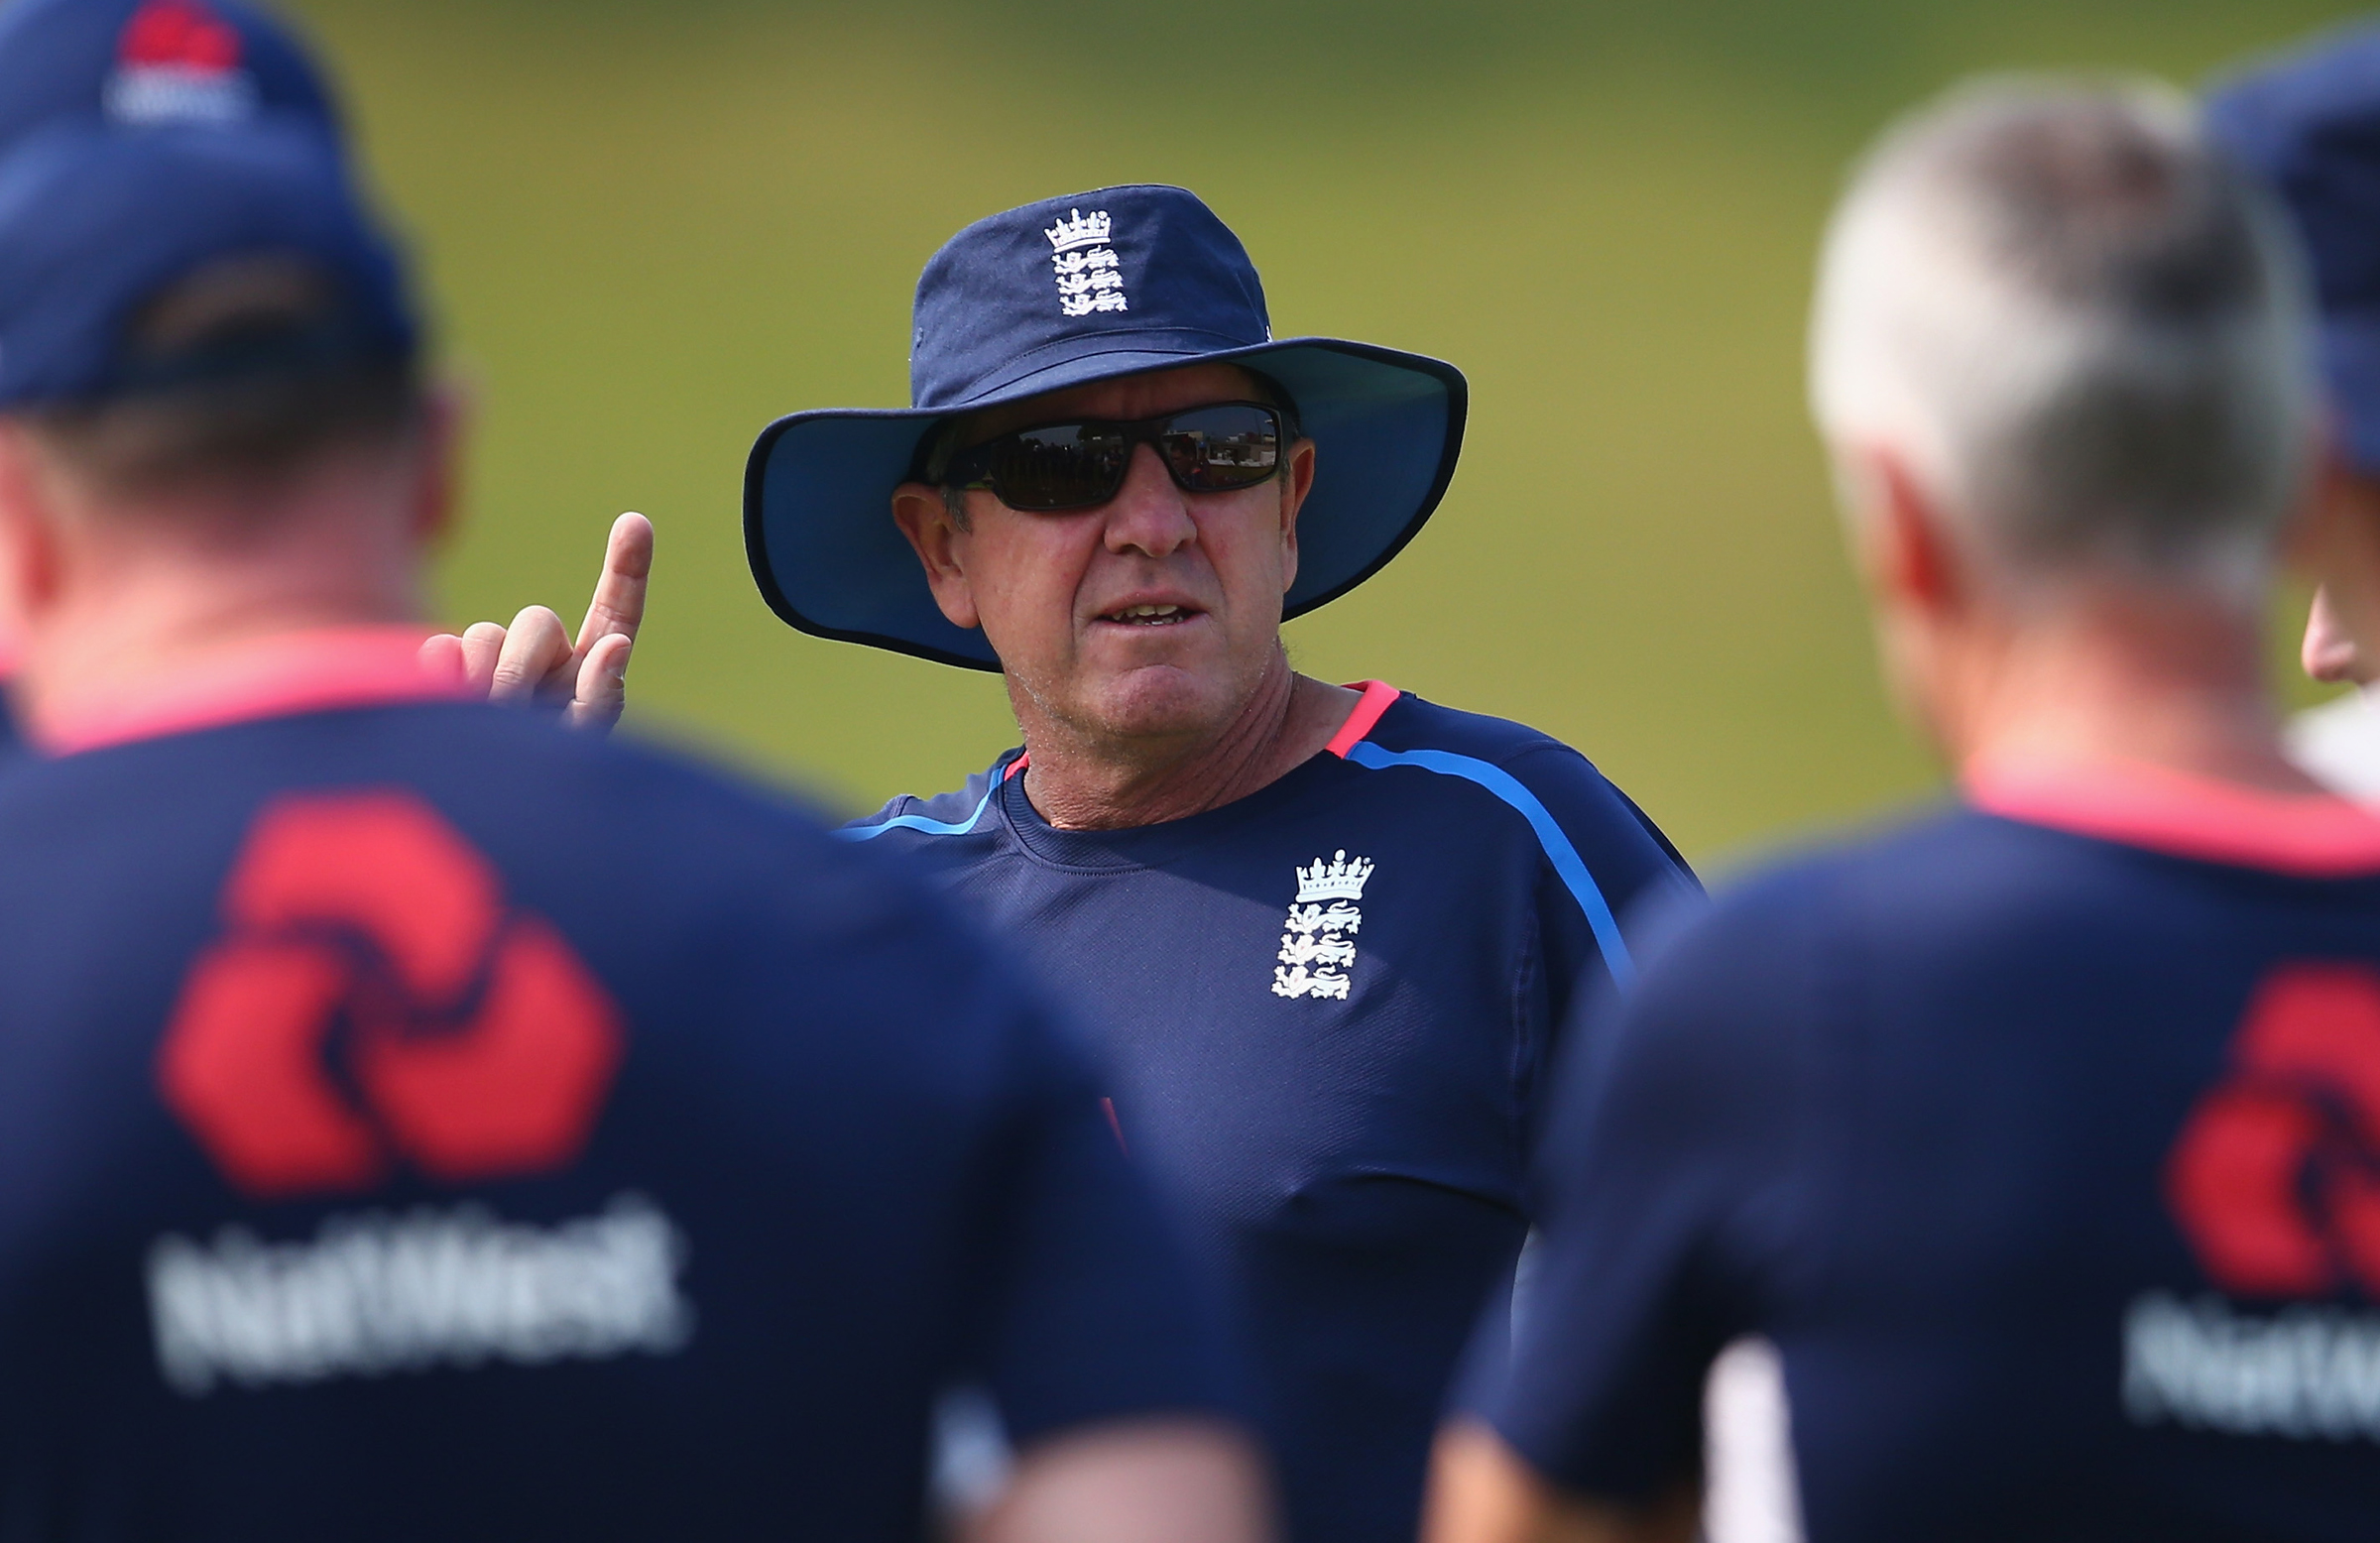 Bayliss fears burnout amid hectic schedule - cricket.com.au Bayliss fears burnout amid hectic schedule - 웹